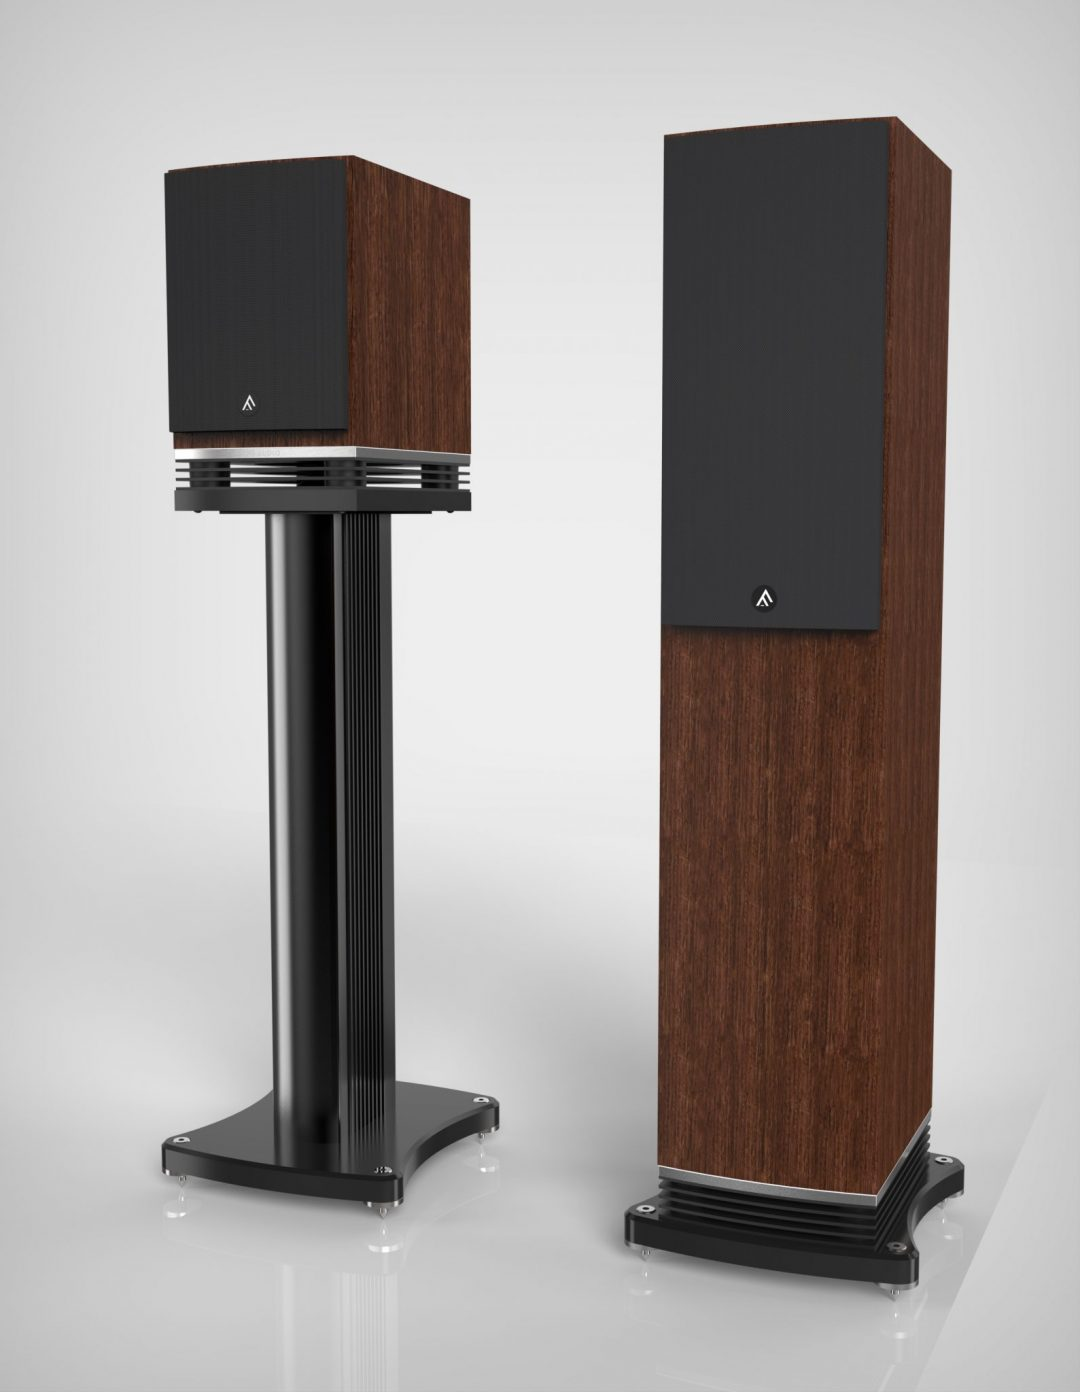 NEWS: F300 & F500 Speakers From Fyne / The Audiophile Man